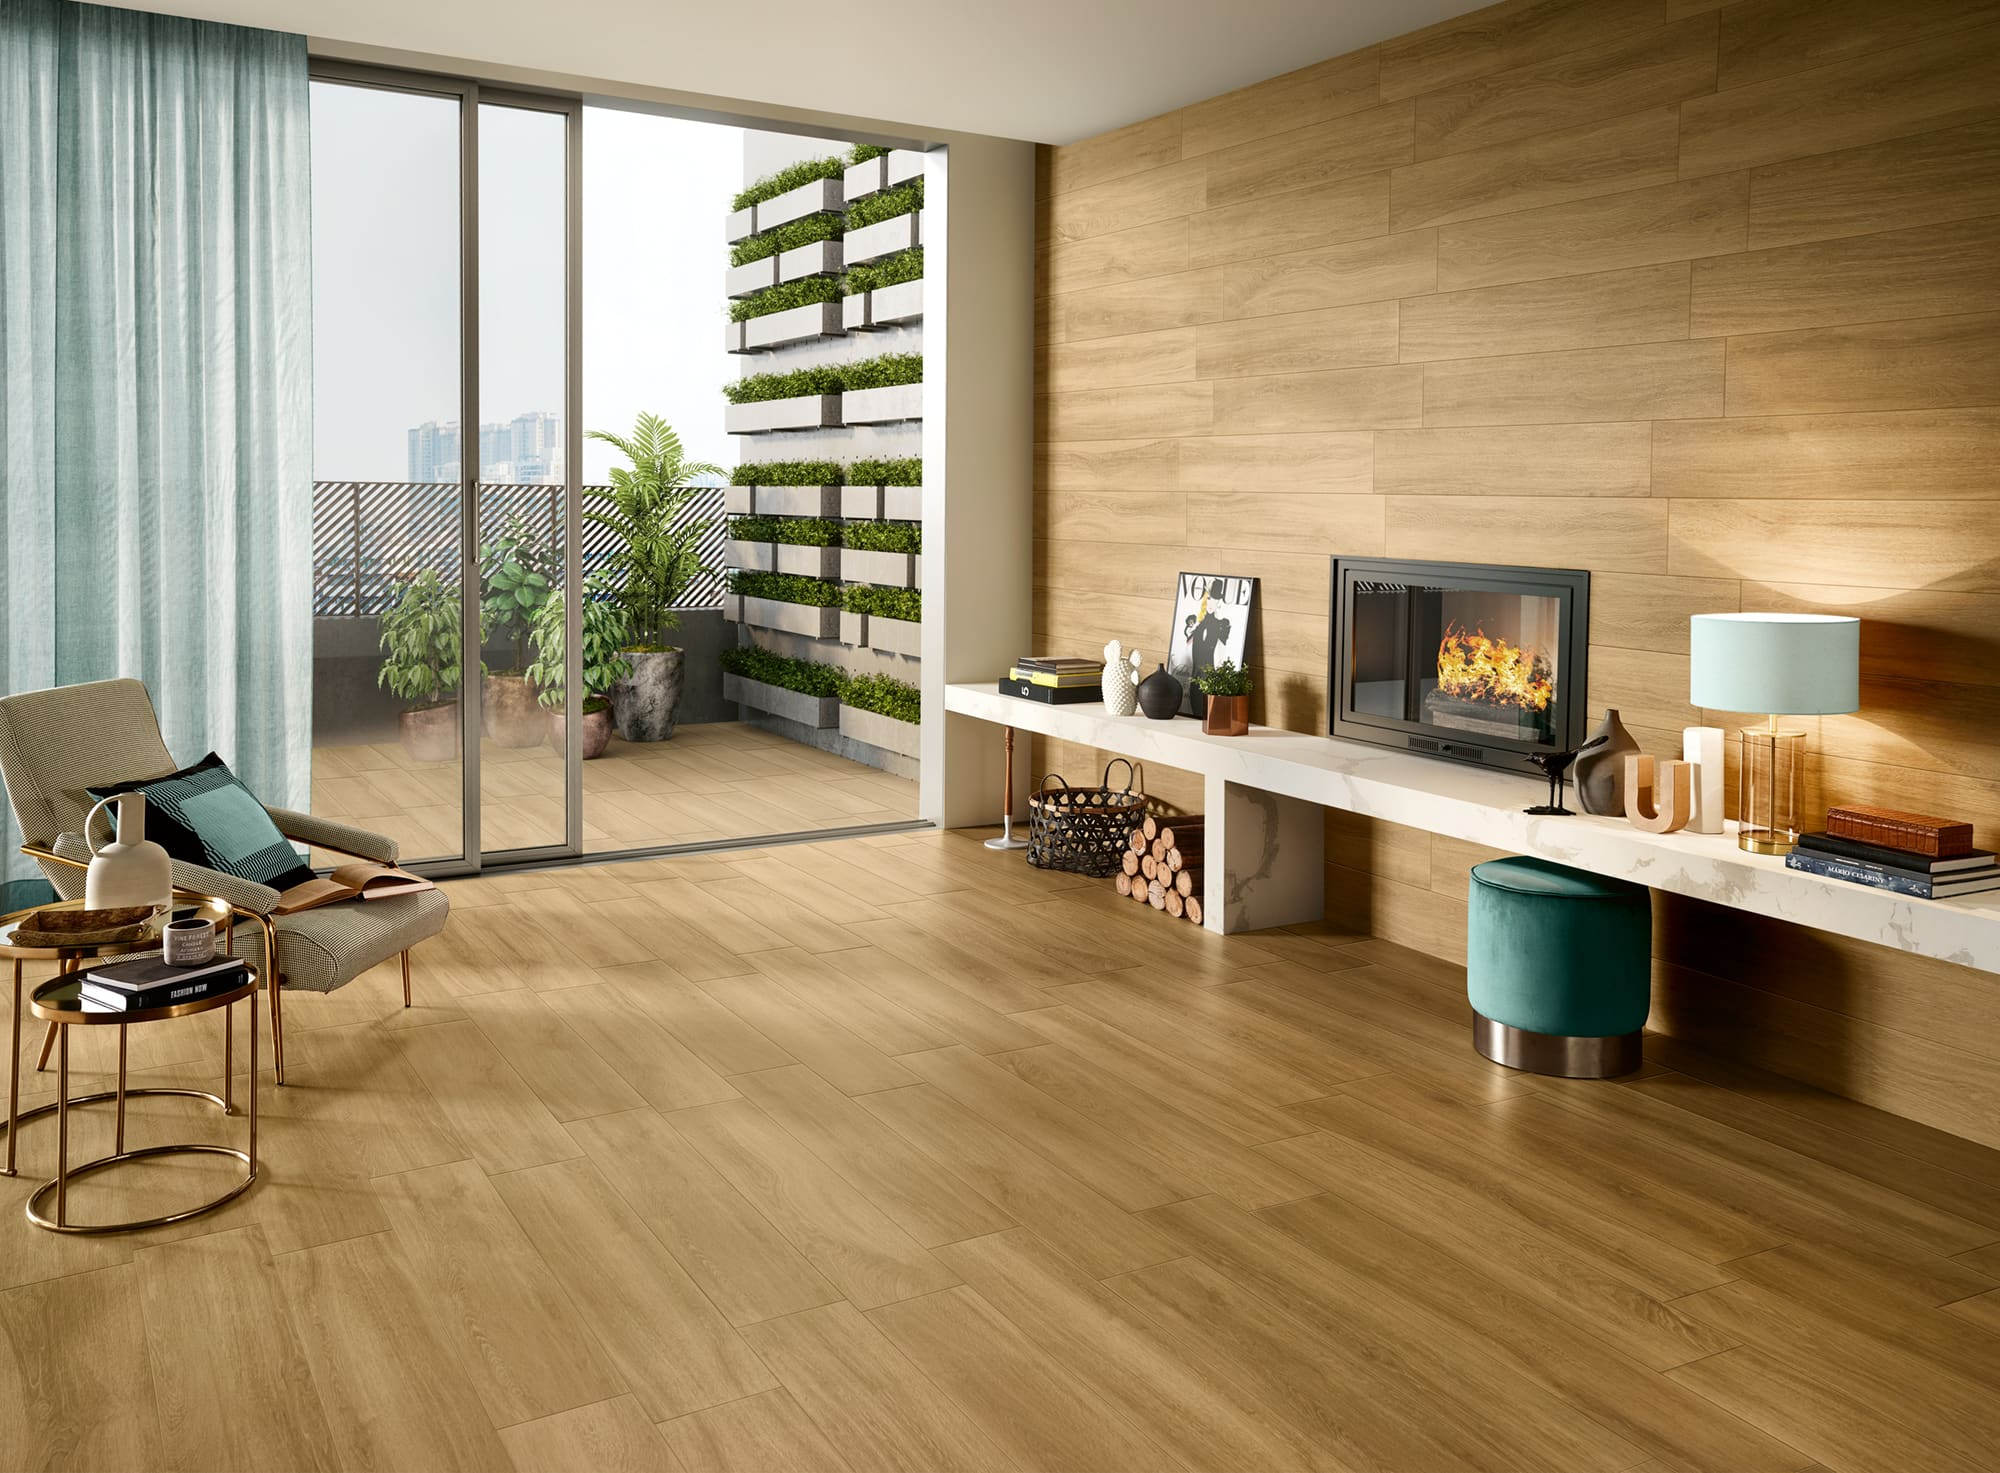 TIMBER BEIGE - 20 x 100 | TIMBER BEIGE - 20 x 100 AS